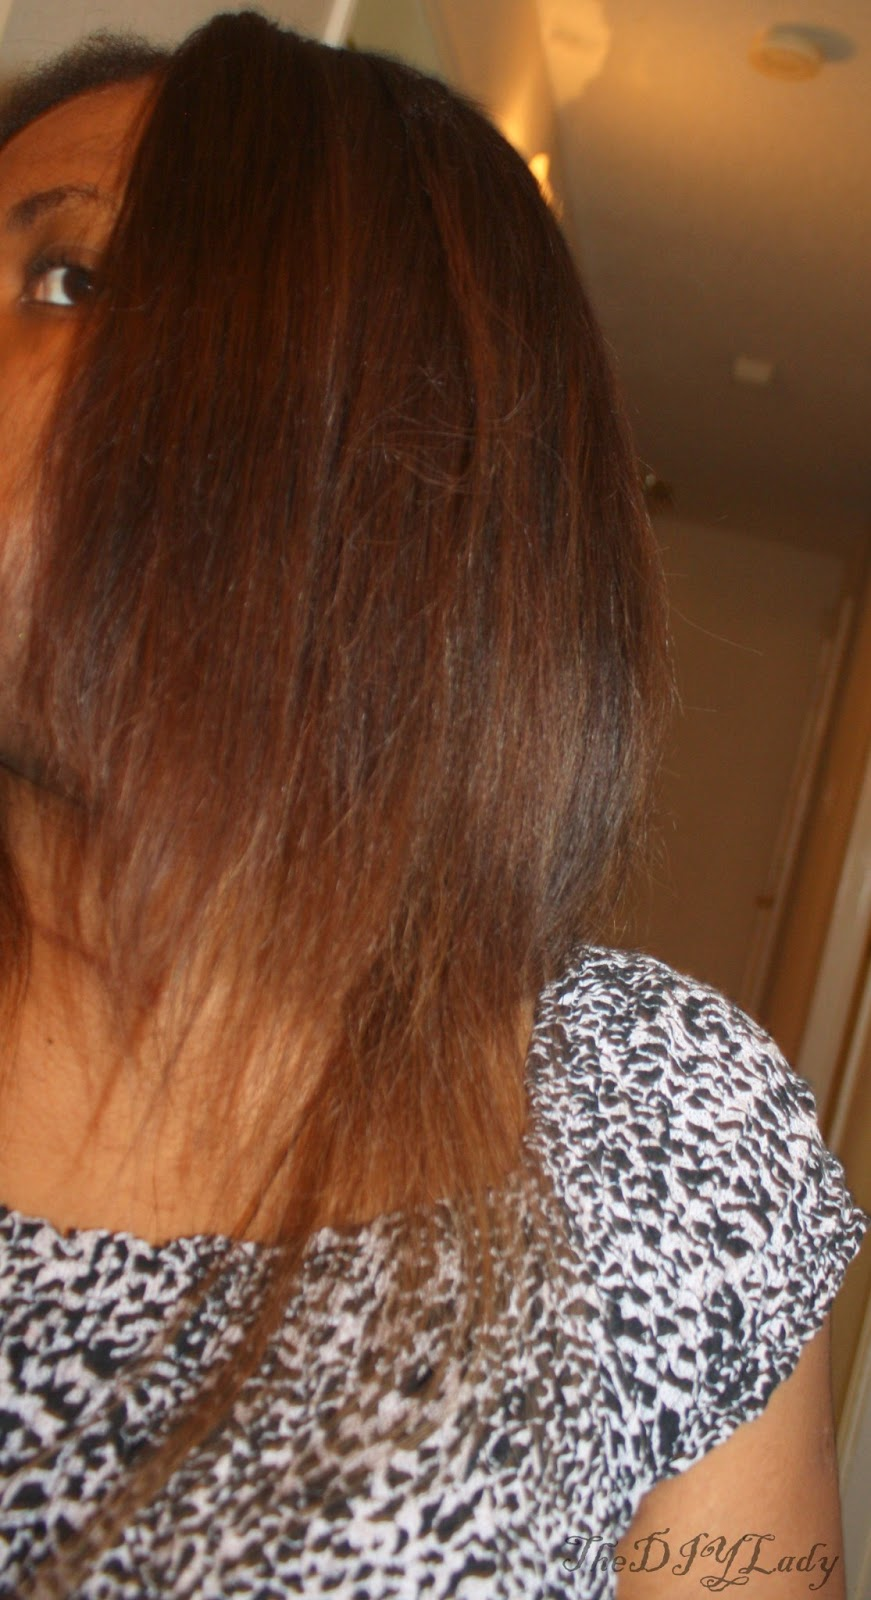 Now She Is Using Hairatin That Blends Perfectly With Any Hair Color Without Leaving The Erlesat Earance Other Brands Do